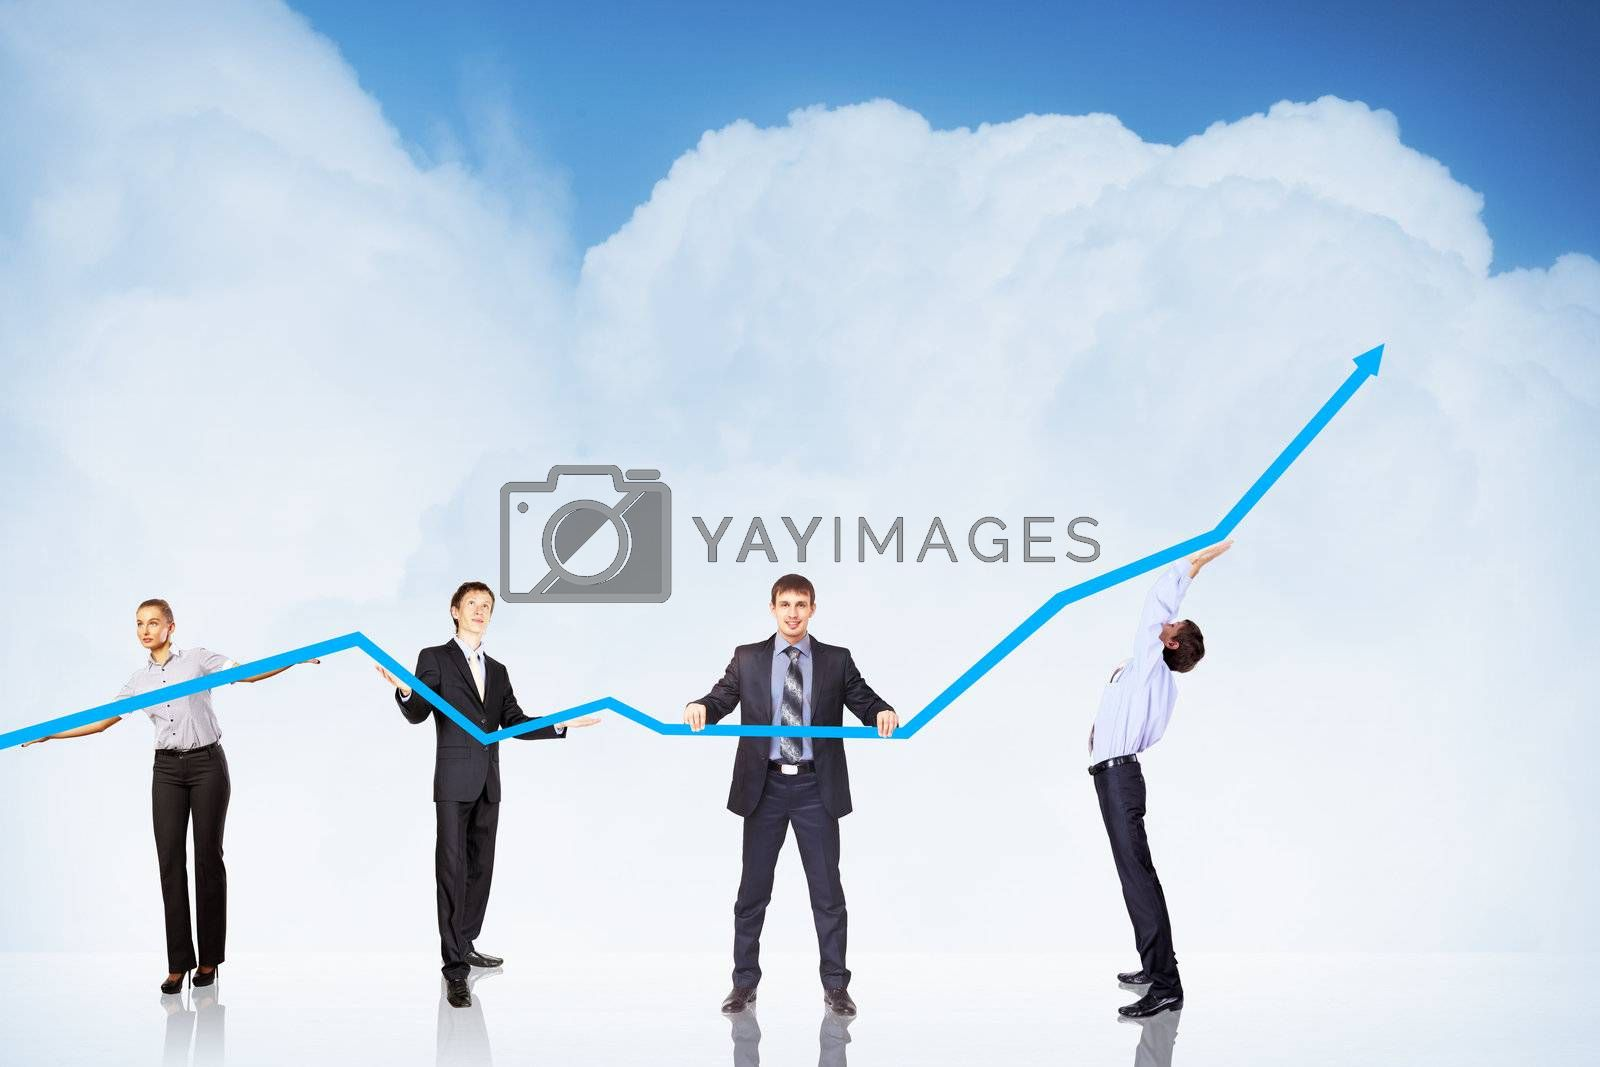 Business Growth And Success Graph by Sergey Nivens